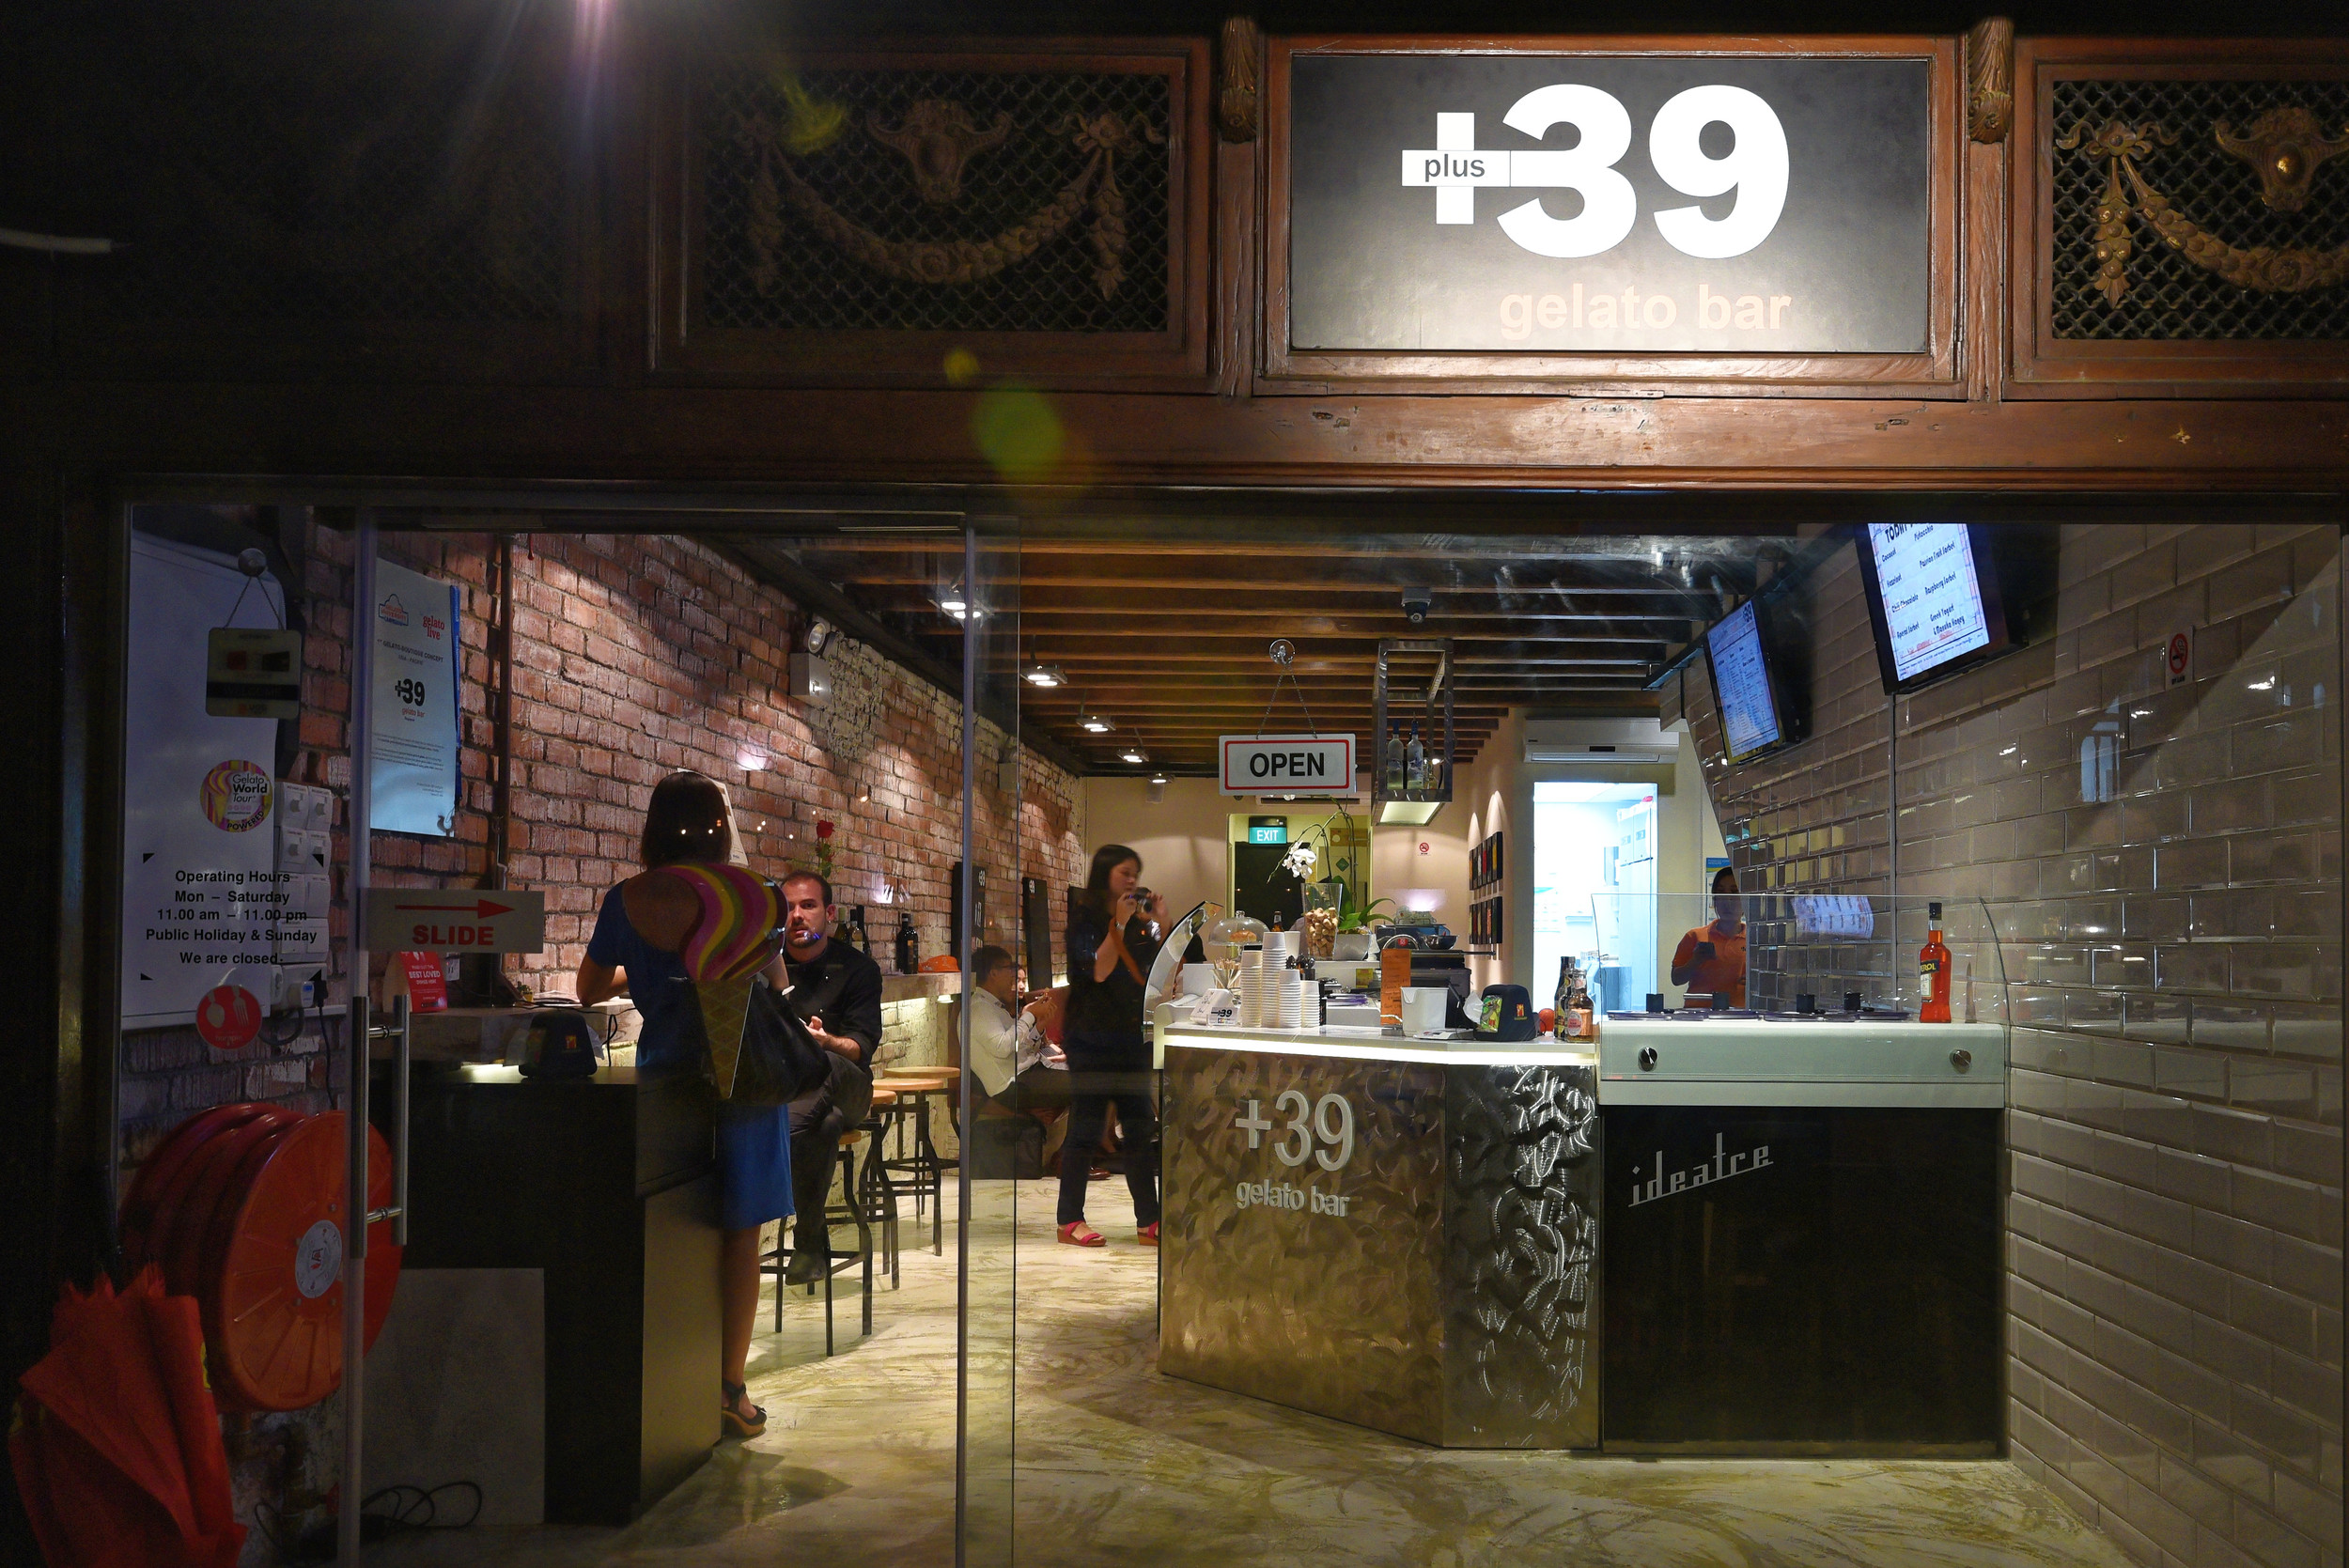 The Entrance of +39 Gelato Bar